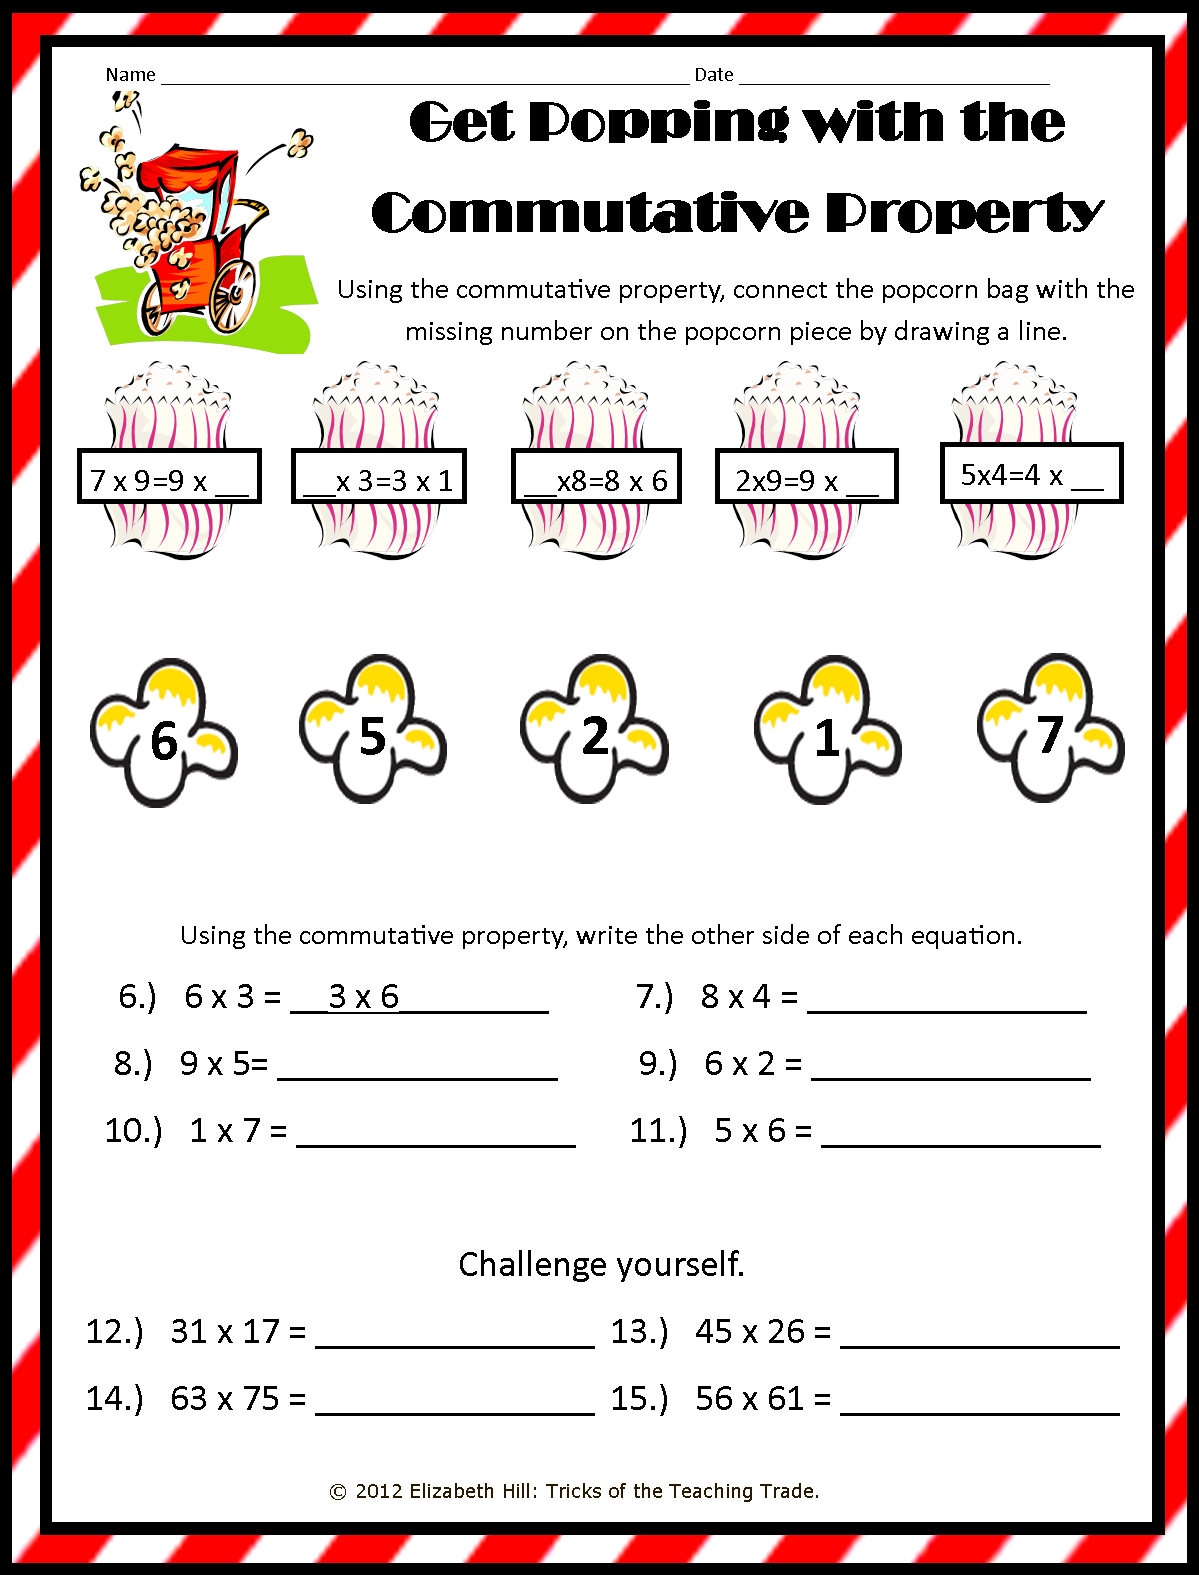 Worksheet How To Teach Multiplication To 3rd Grade worksheet 595800 associative property of addition and commutative worksheets 3rd grade math multiplication worksheets